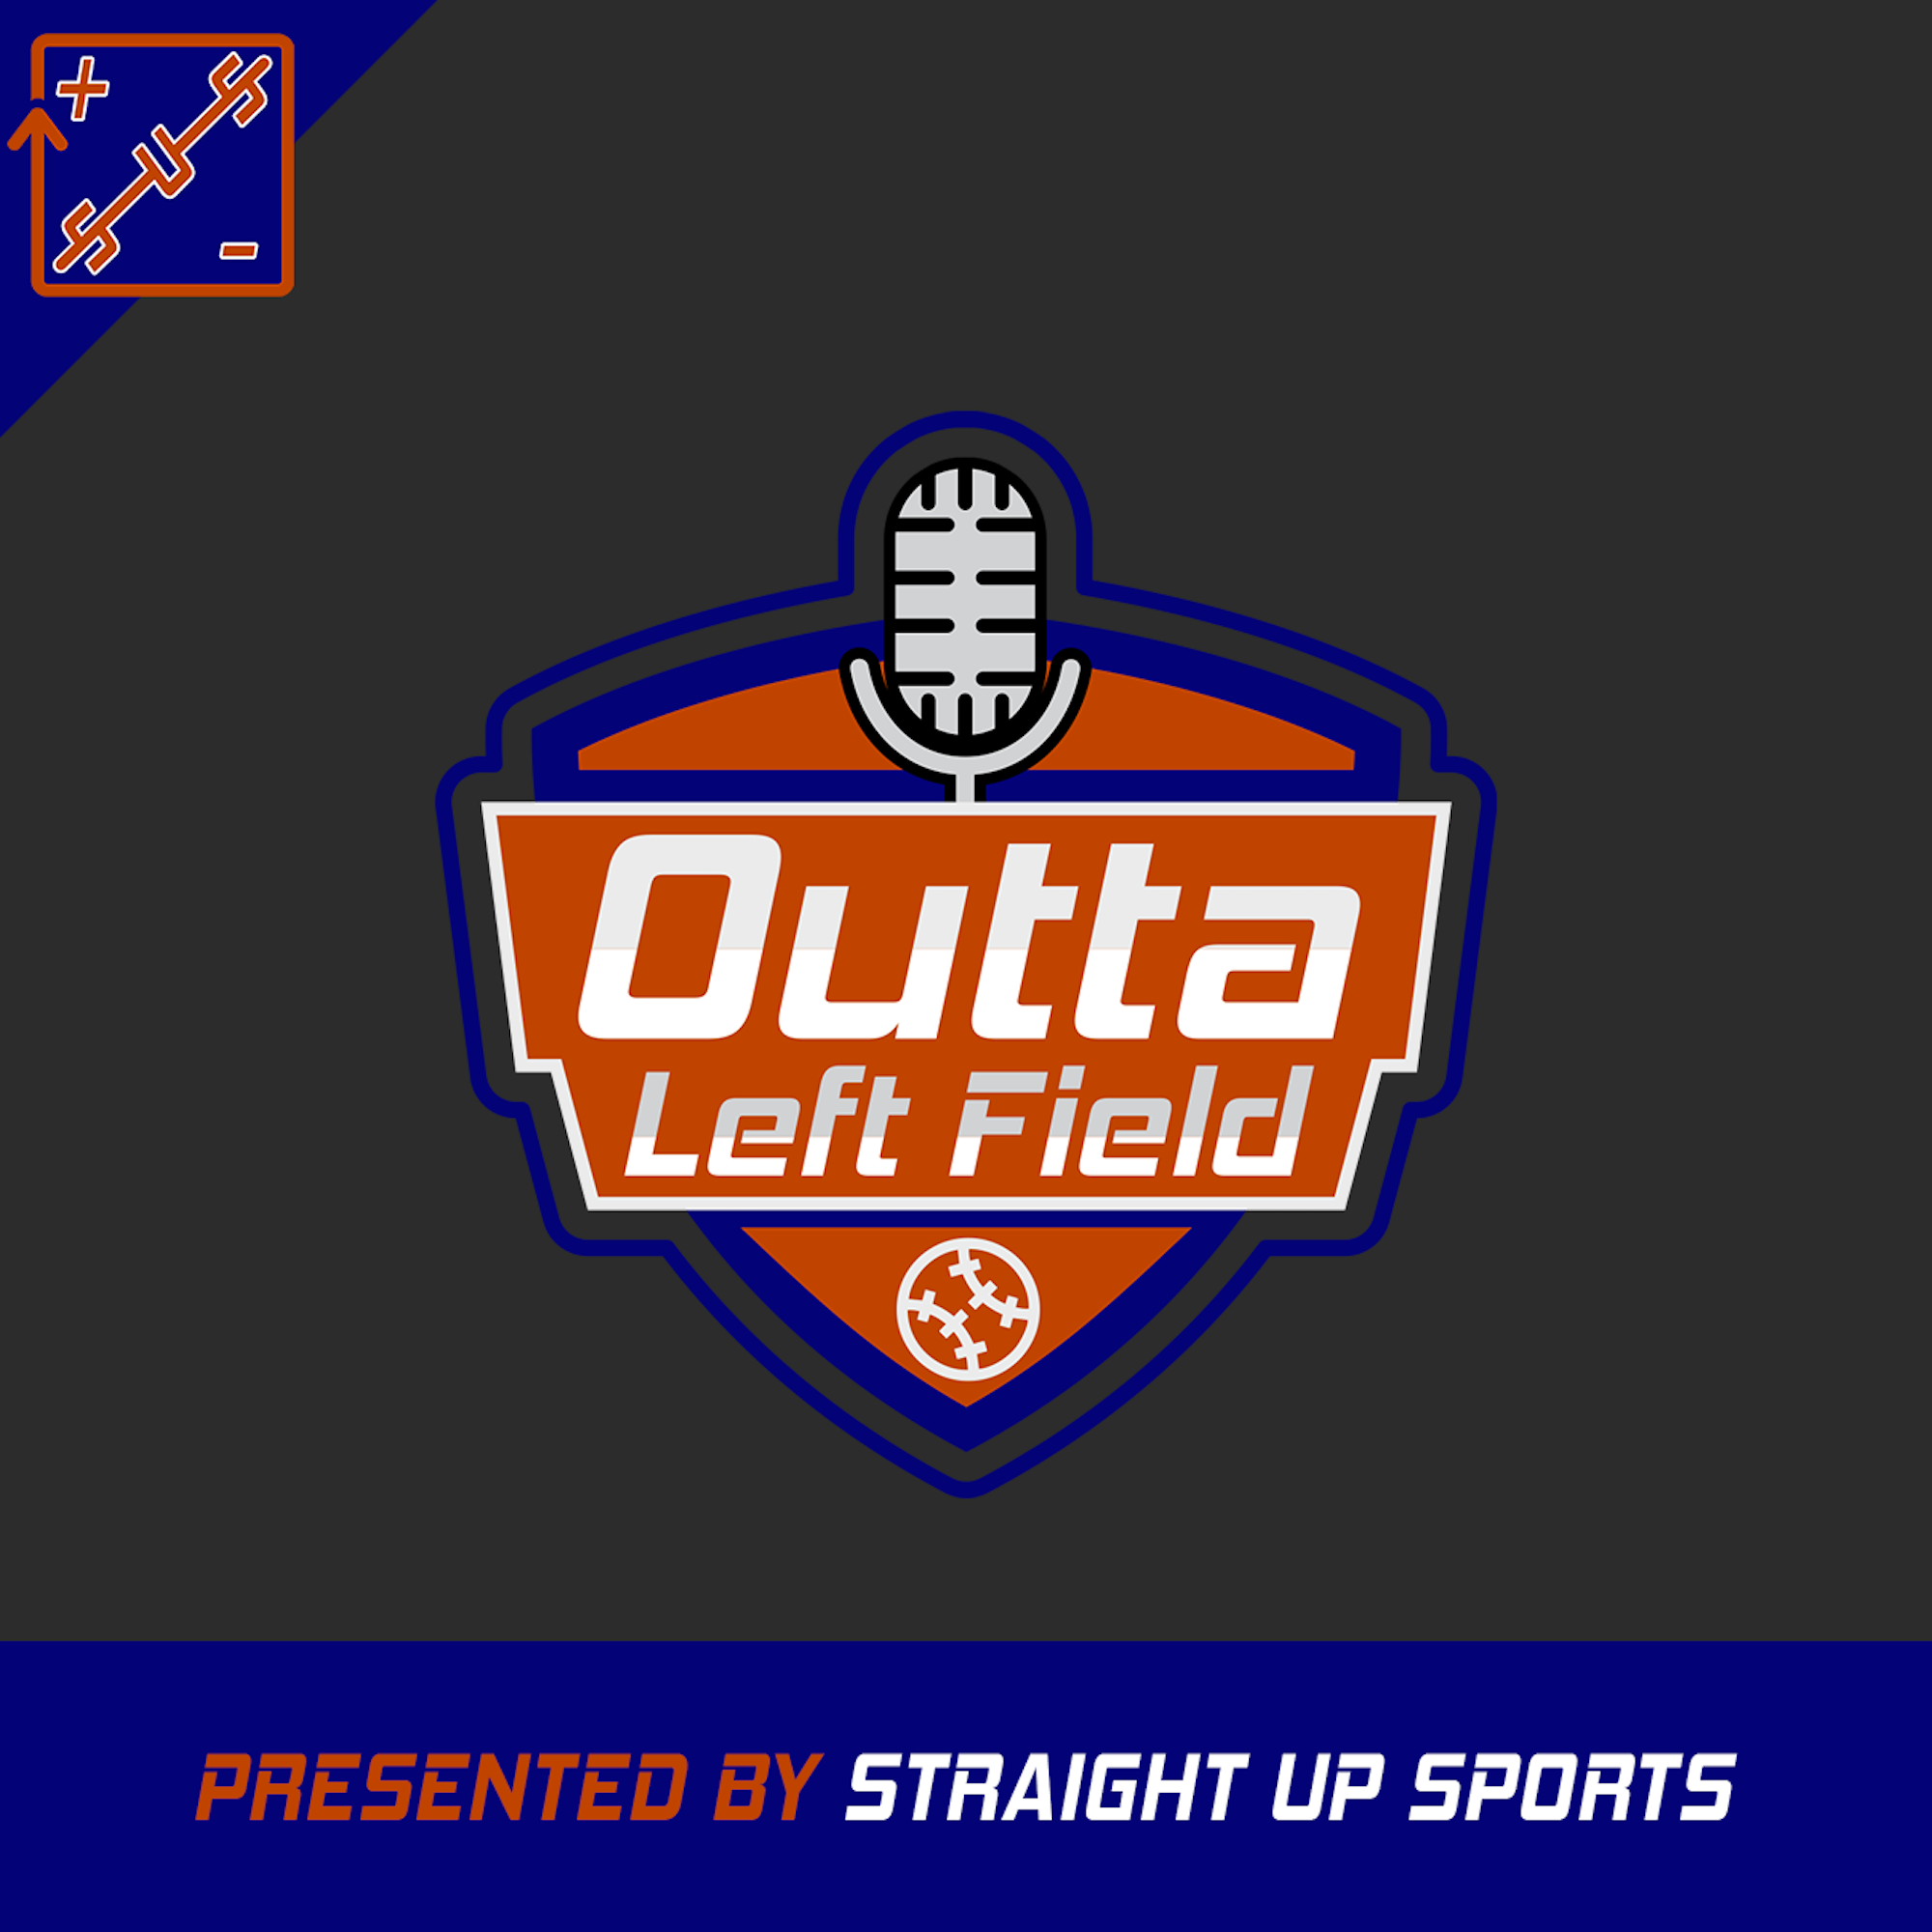 Outta Left Field Cover.png